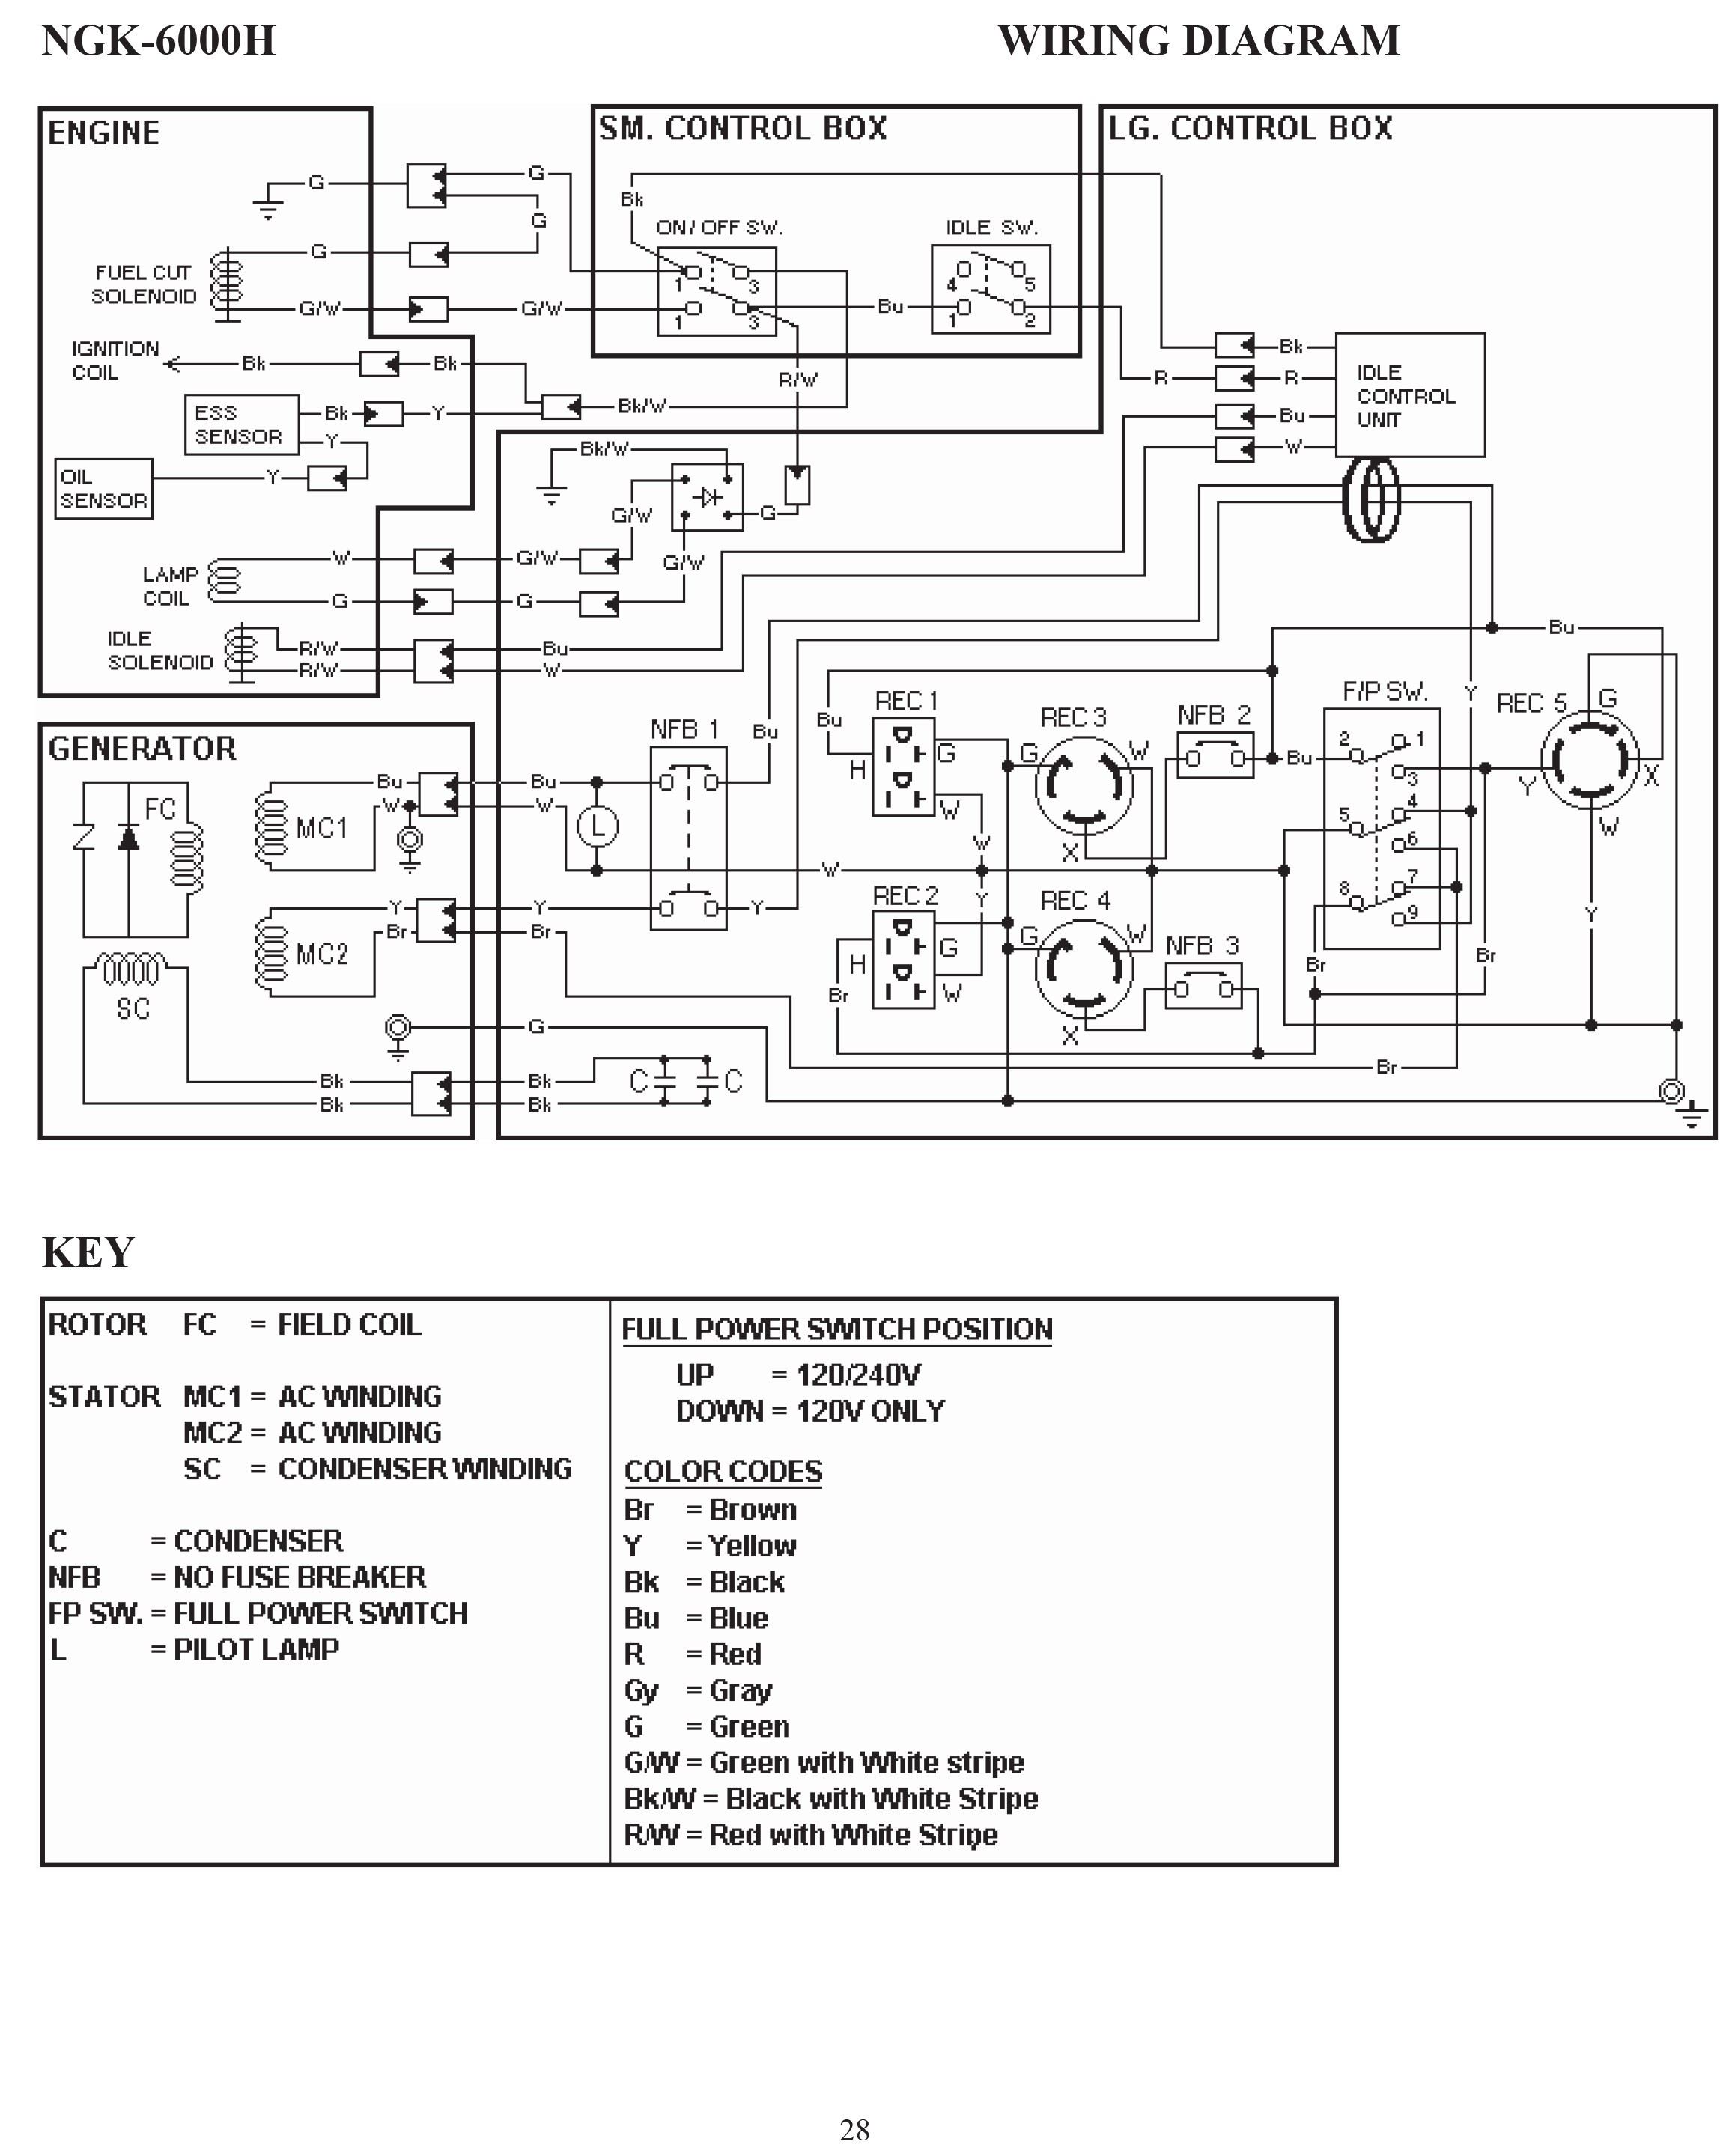 Wiring Diagram Psc Motor Furnace Blower For Electrical Diagrams Emerson Trusted Scroll Compressor Us Motors